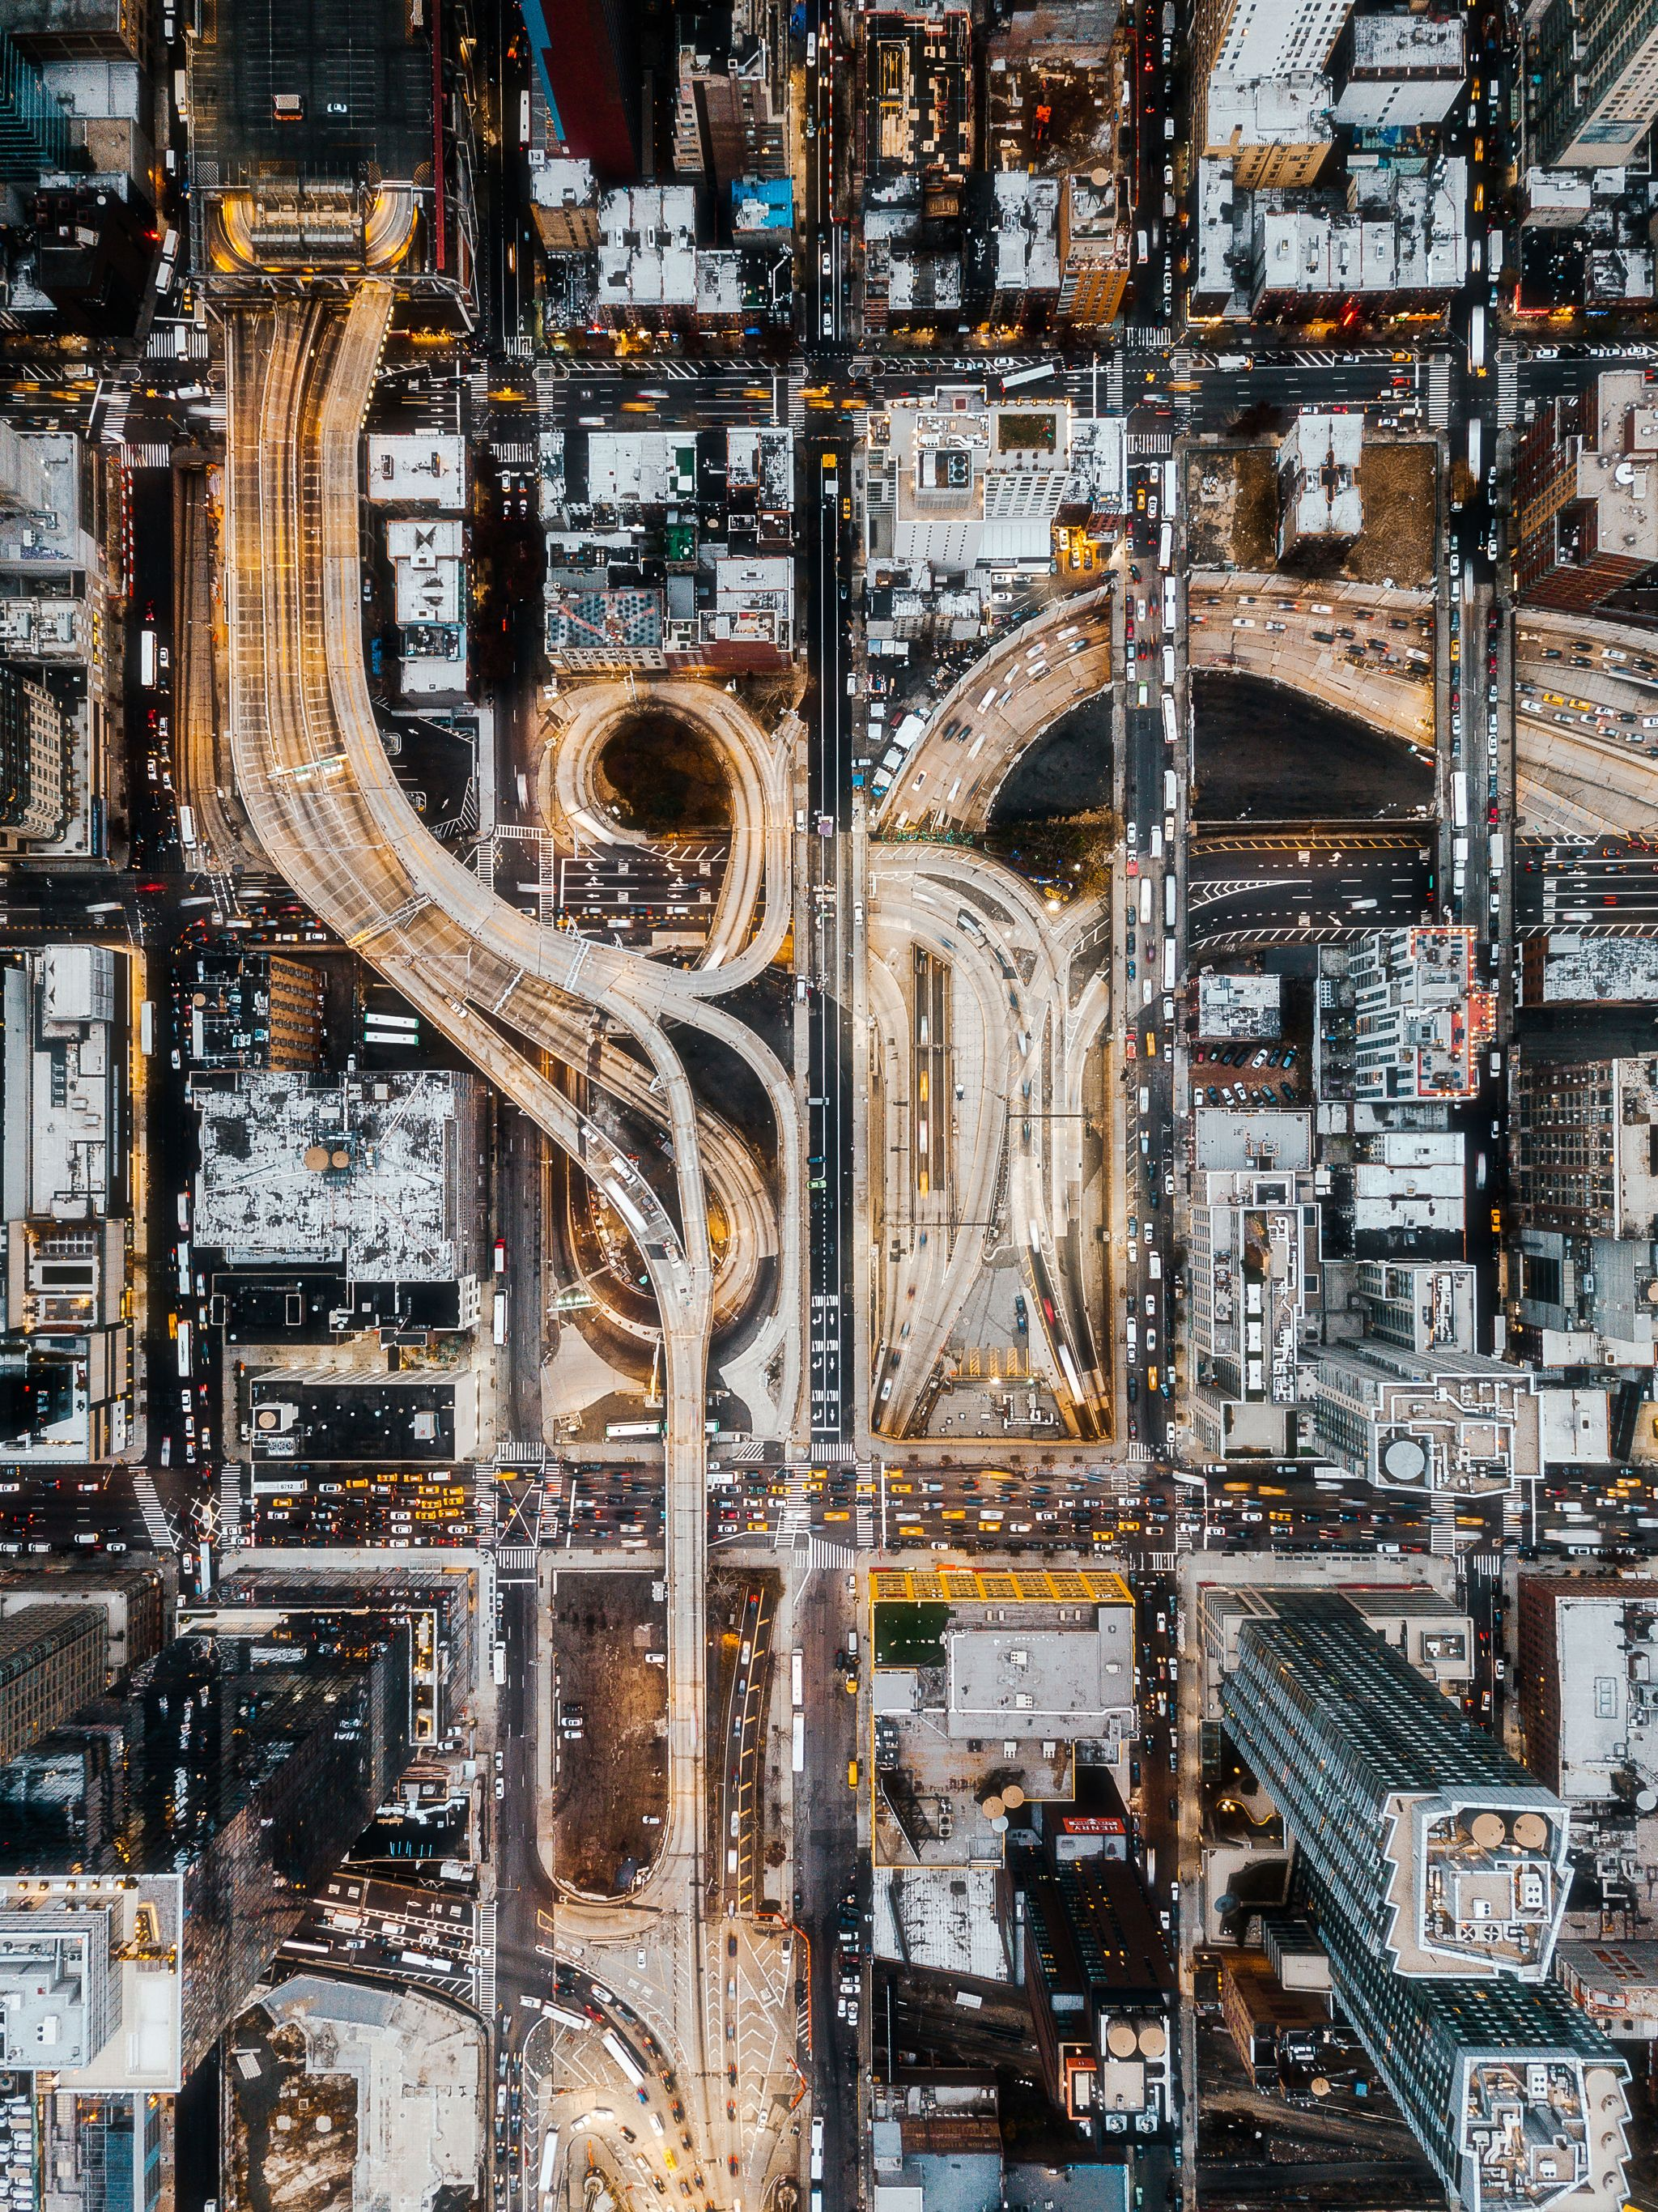 NYC Drone Photos By Humza Deas